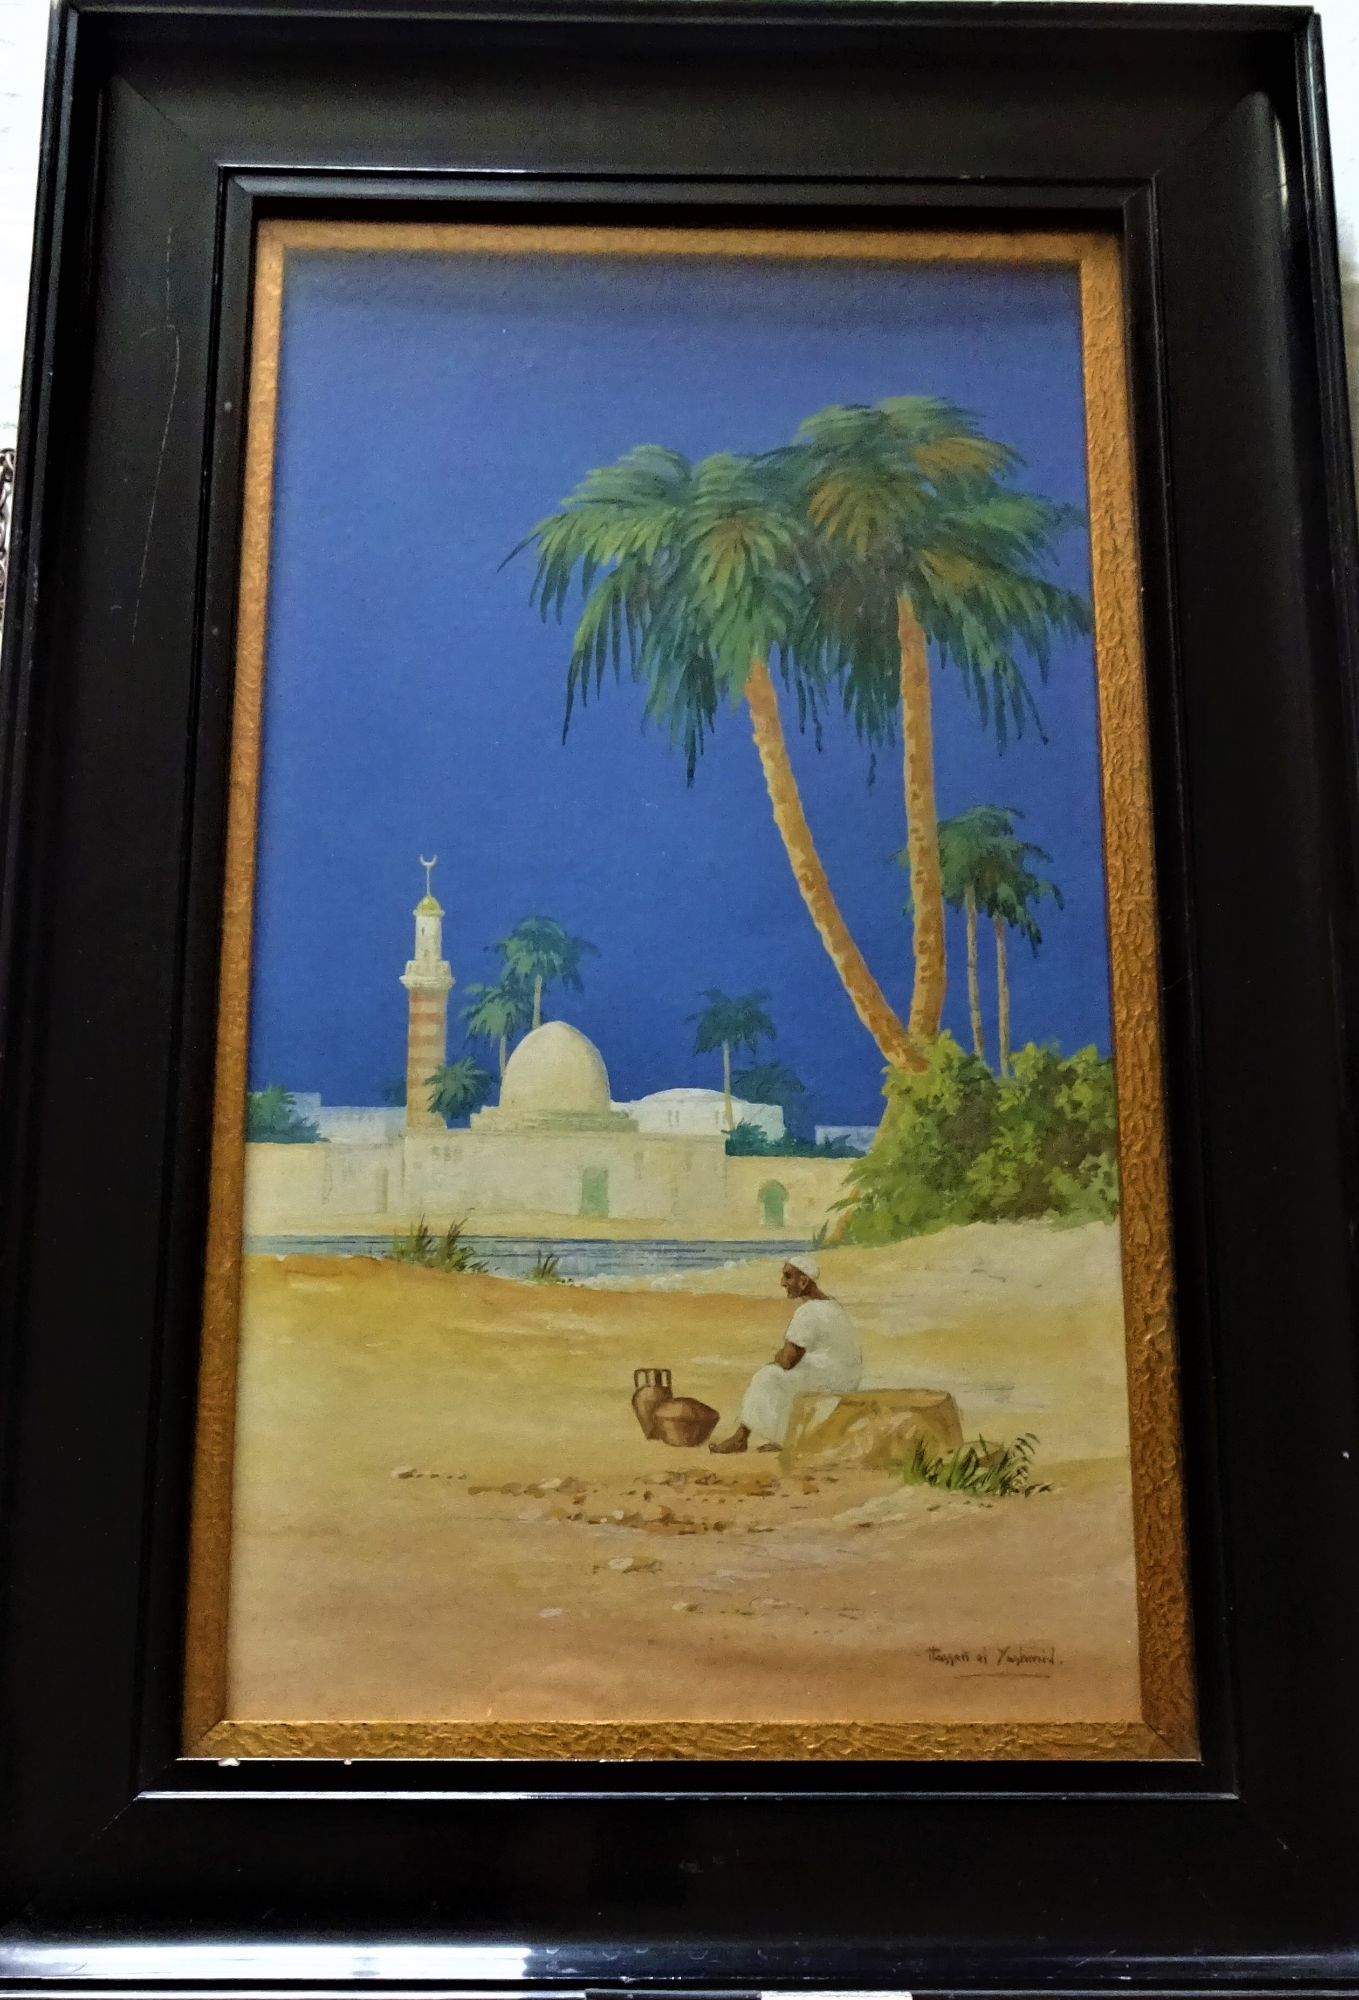 Taking a Rest opposite the Mosque, gouache on paper, signed Hassan el Yashmid, c1900. Framed.